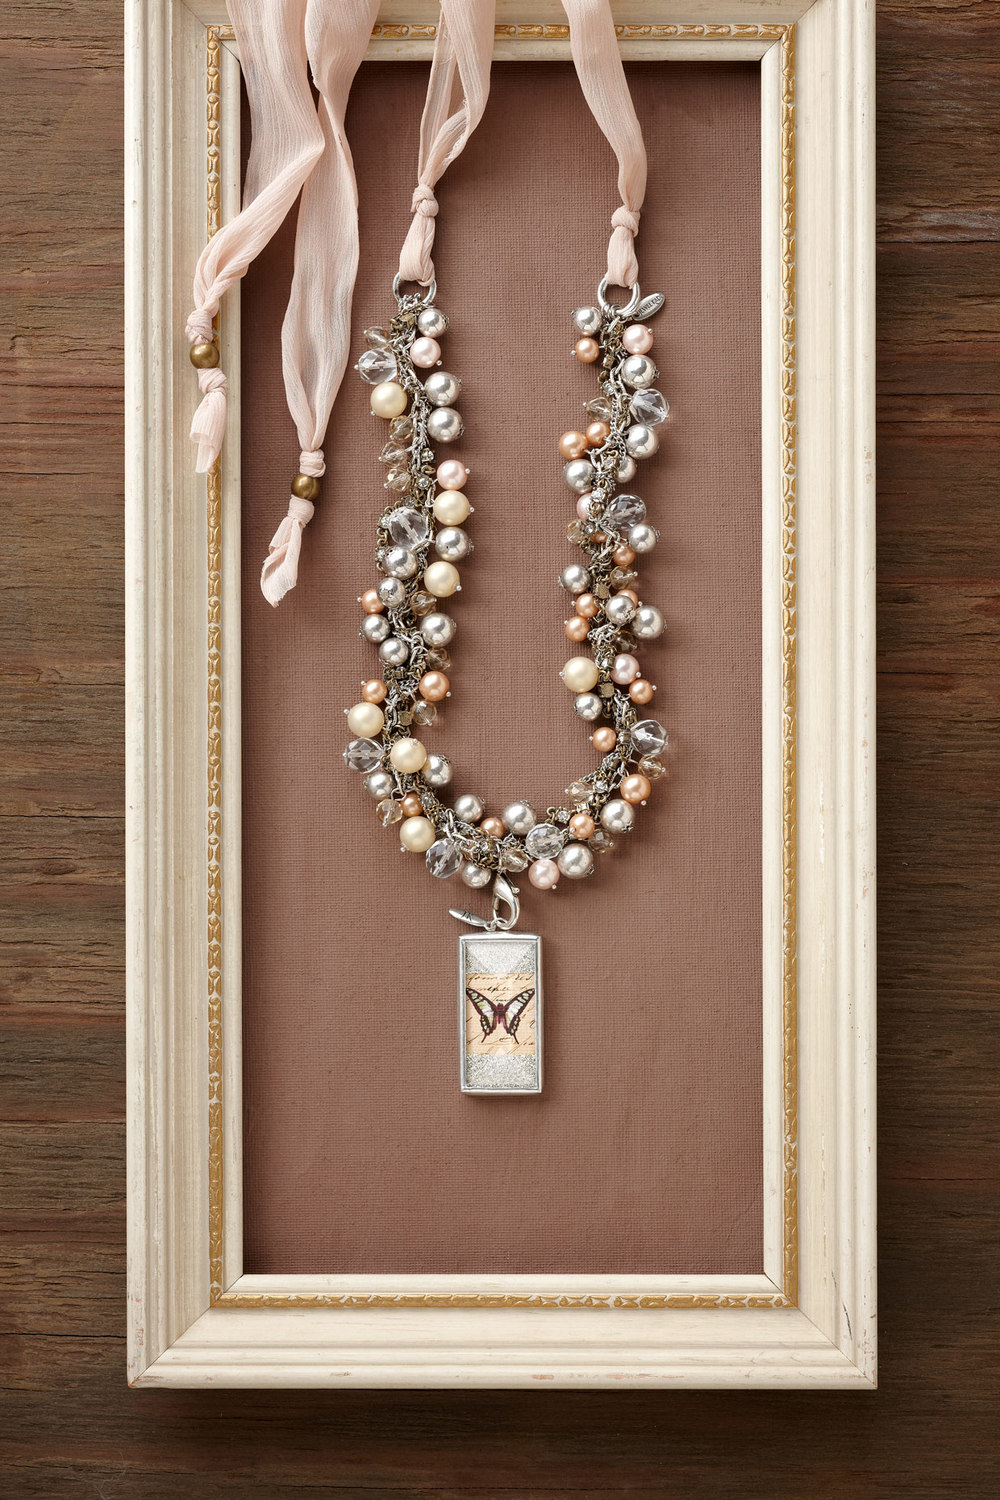 Product photography Jewelry Derek Israelsen Pearl Necklace Frame